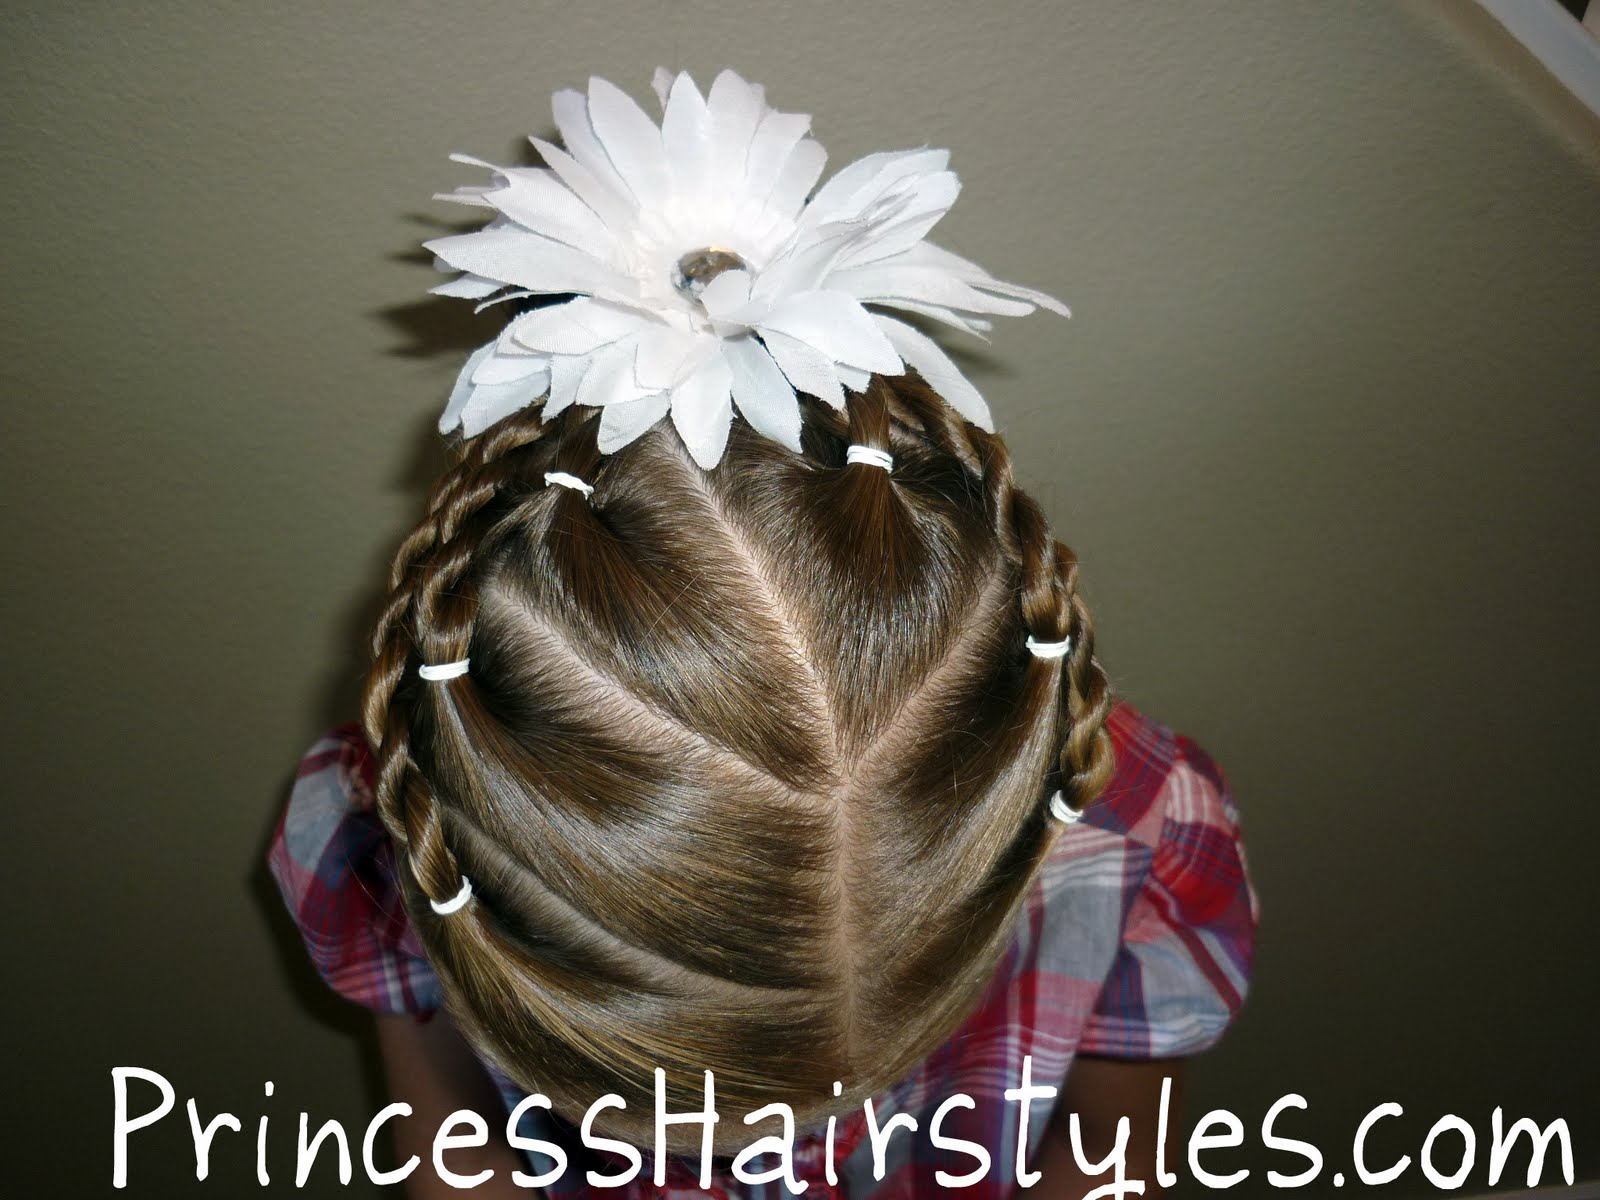 Cute Hairstyle For Sports Hairstyles For Girls Princess Hairstyles